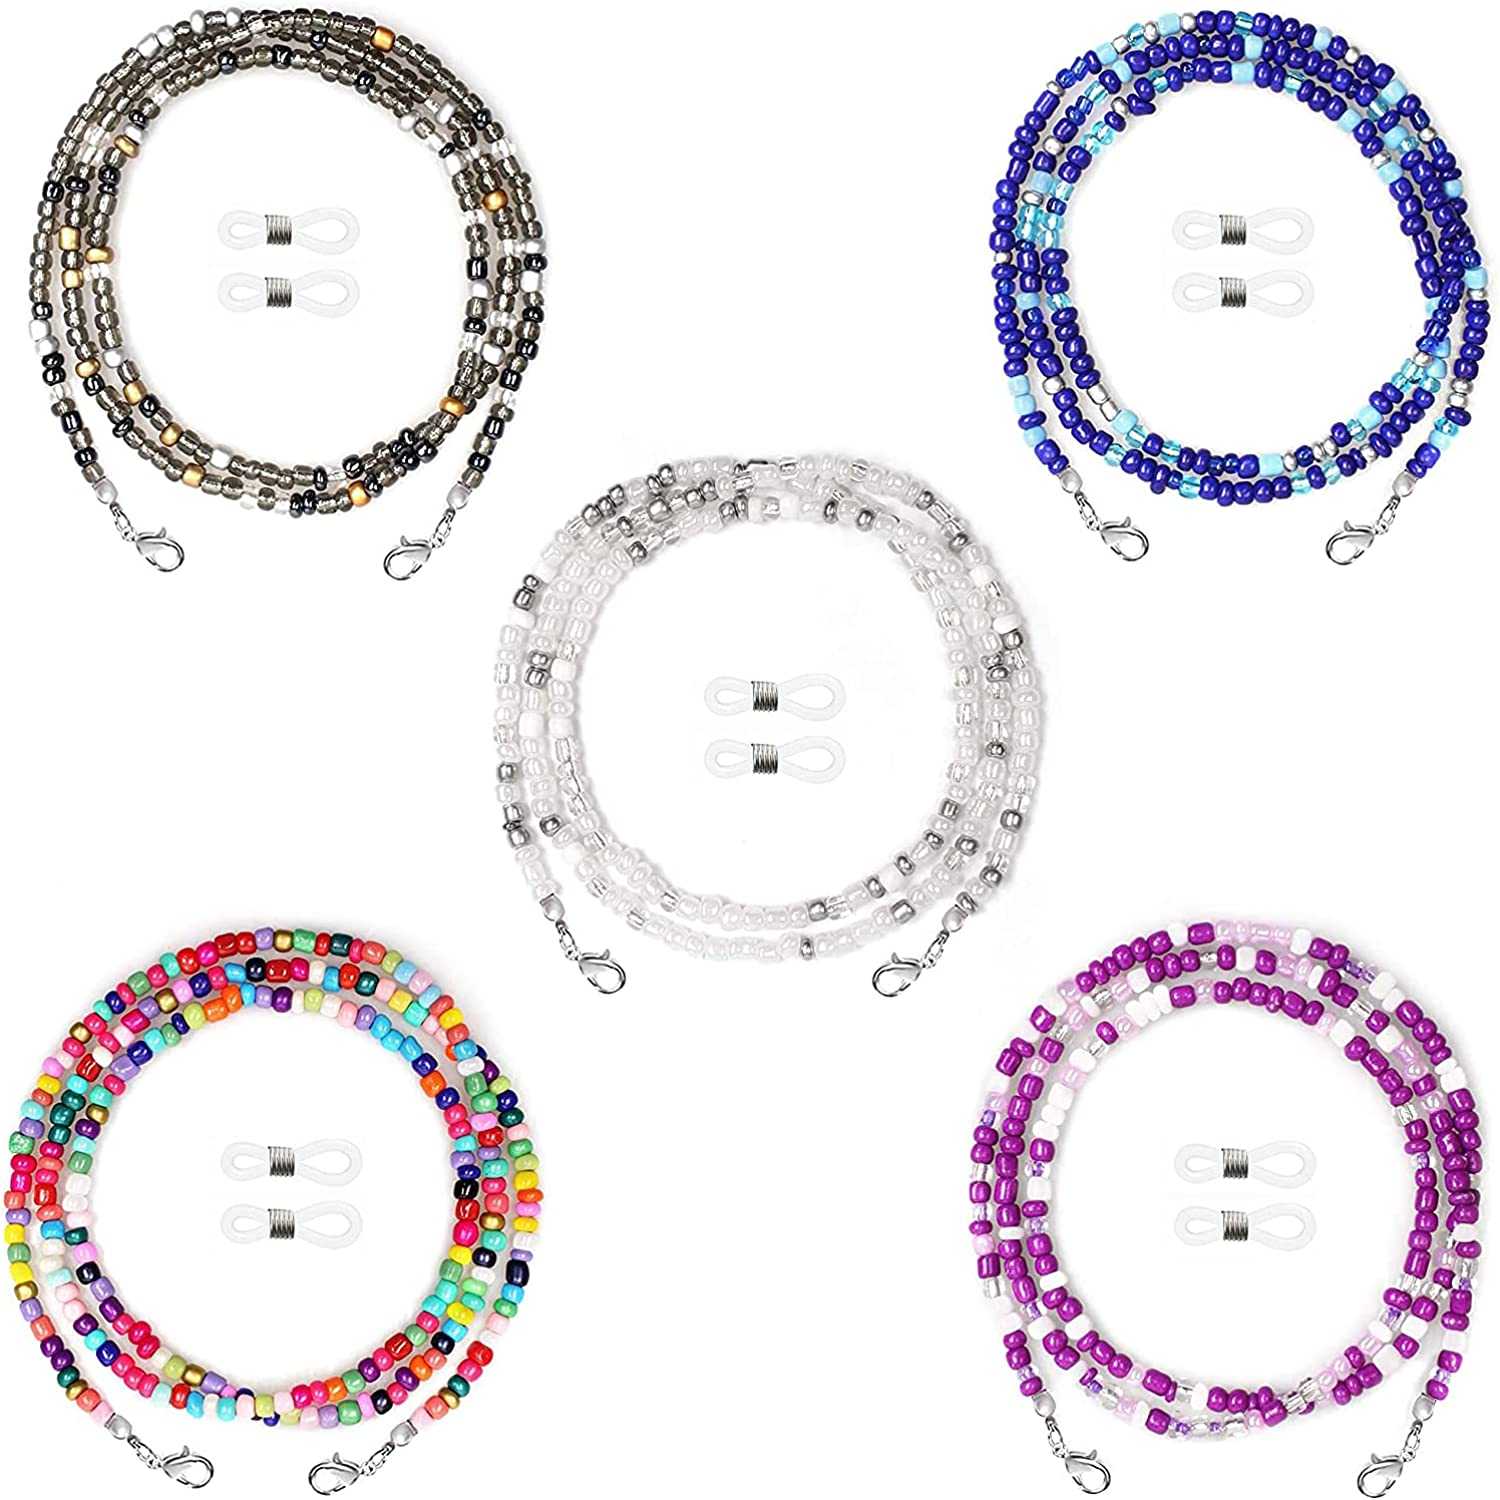 Rpanle Eyeglasses Chain, 4 Pieces Multi-Colour Beaded Eyeglasses Chain, for Sunglasses, Spectacles and Other Types of Eyewear